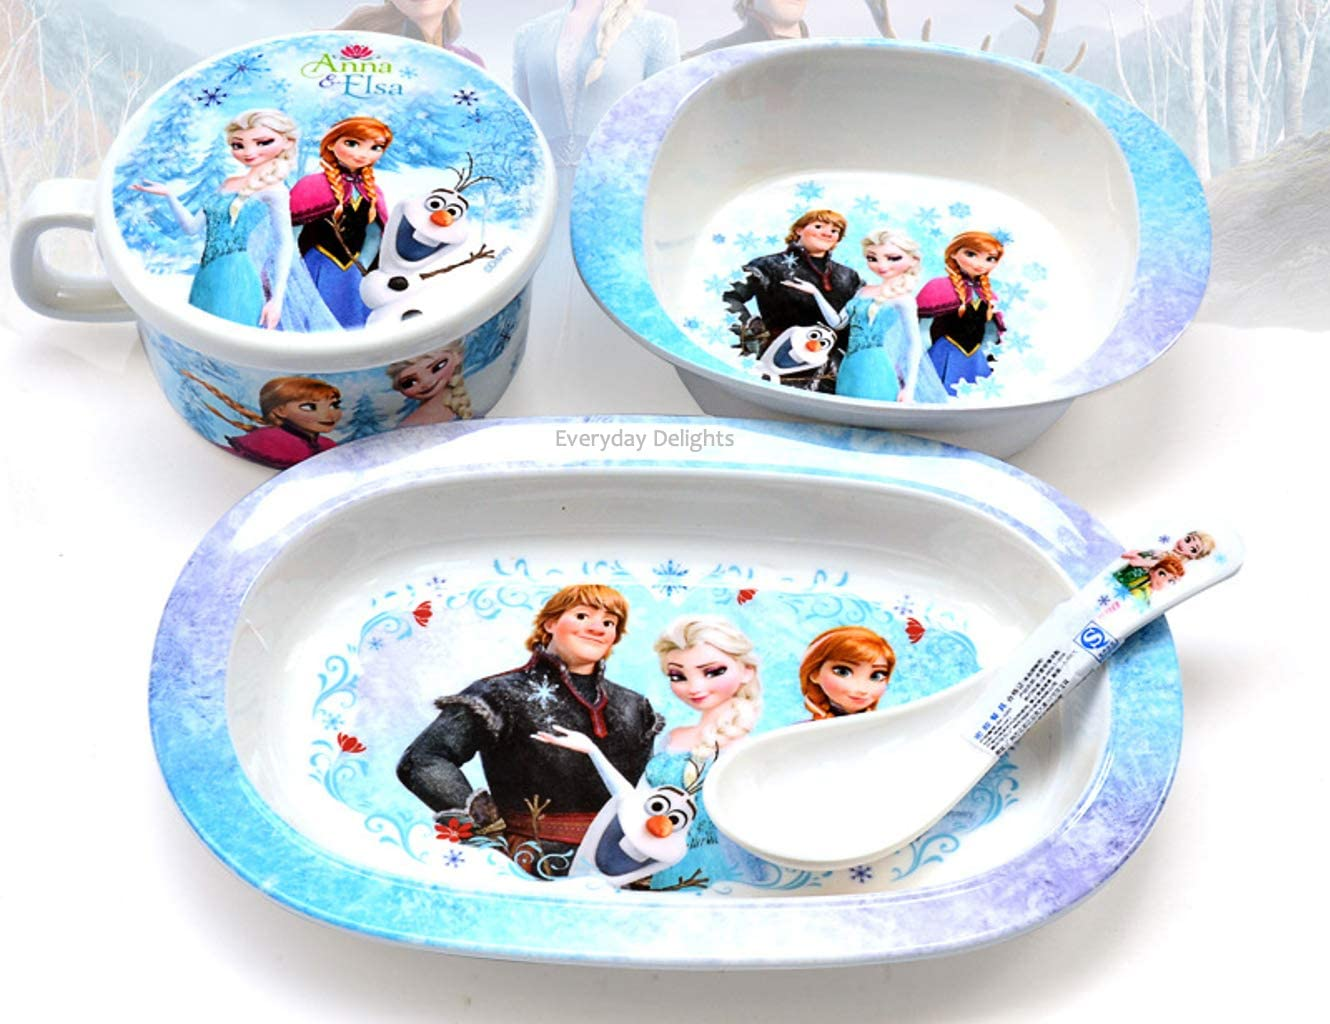 Disney Frozen Elsa Anna Dinnerware Flatware Meal Set for Girls – Plate Bowl Cup with Lid Spoon, 4 pieces